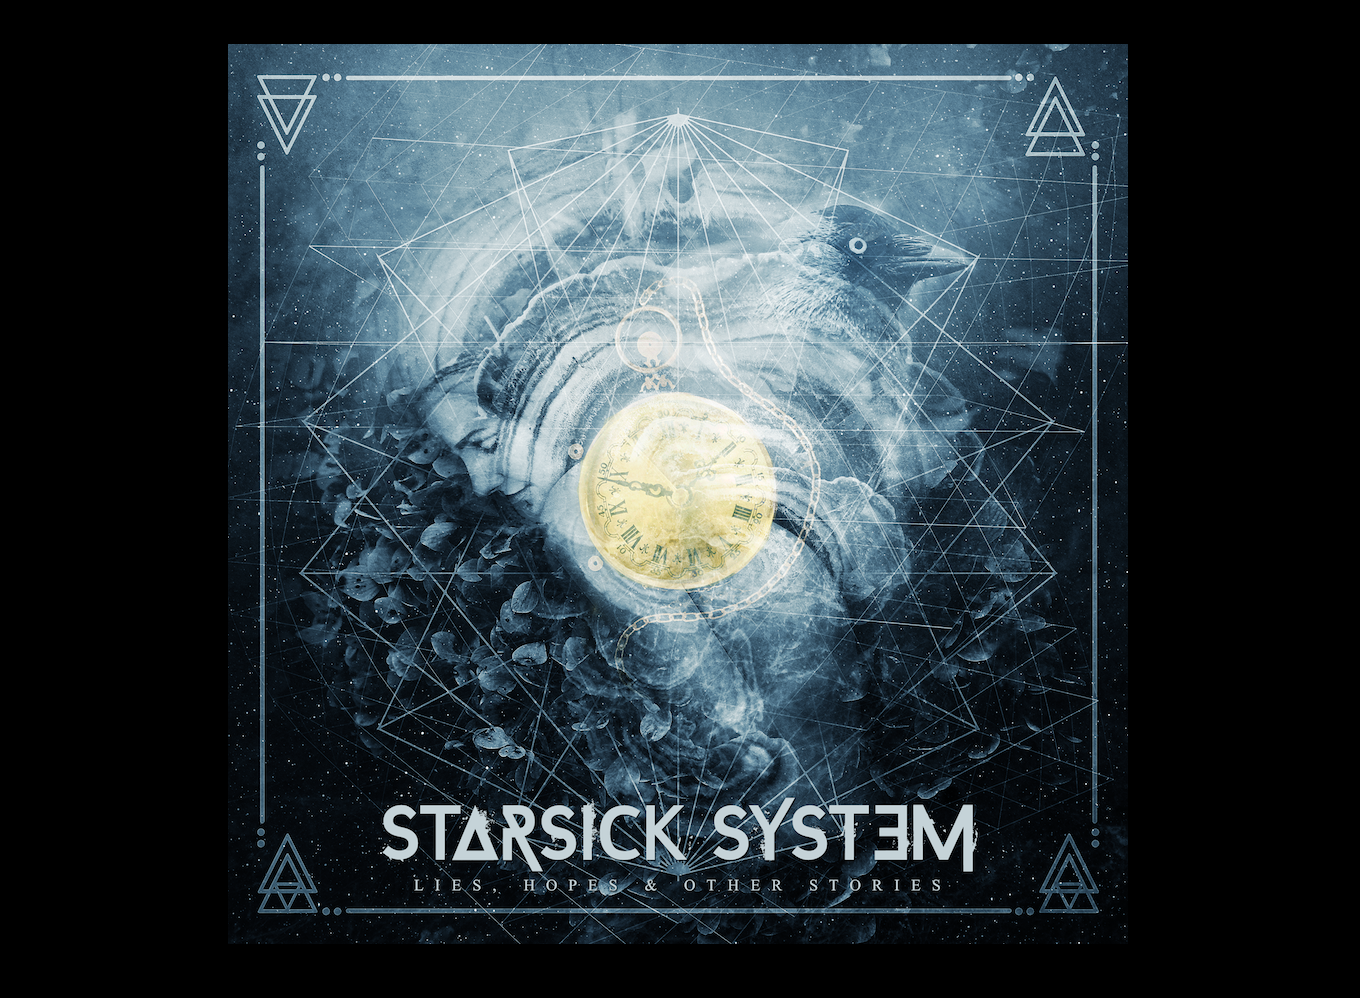 Starsick system Lies, Hopes & Other Stories